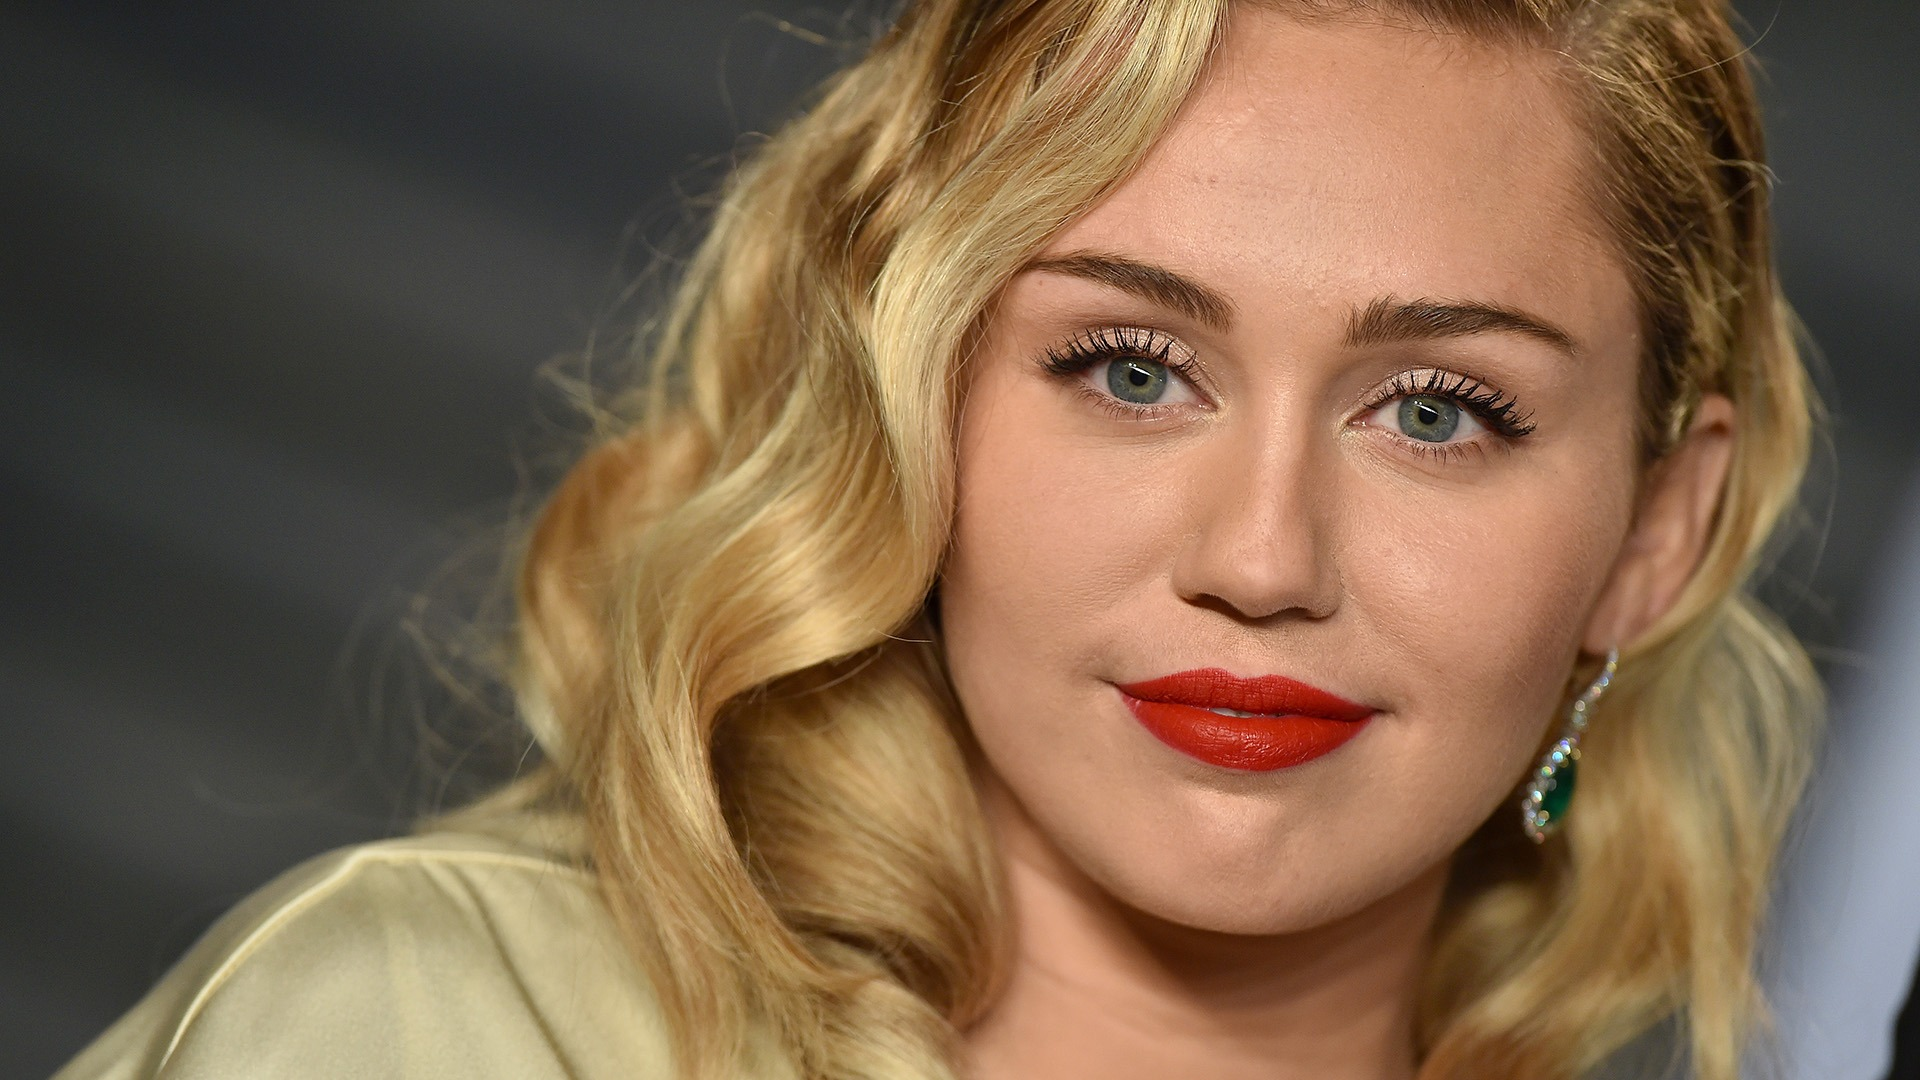 Miley Cyrus Releases New Breakup Song #8220;it#8217;s time to let it go#8221;